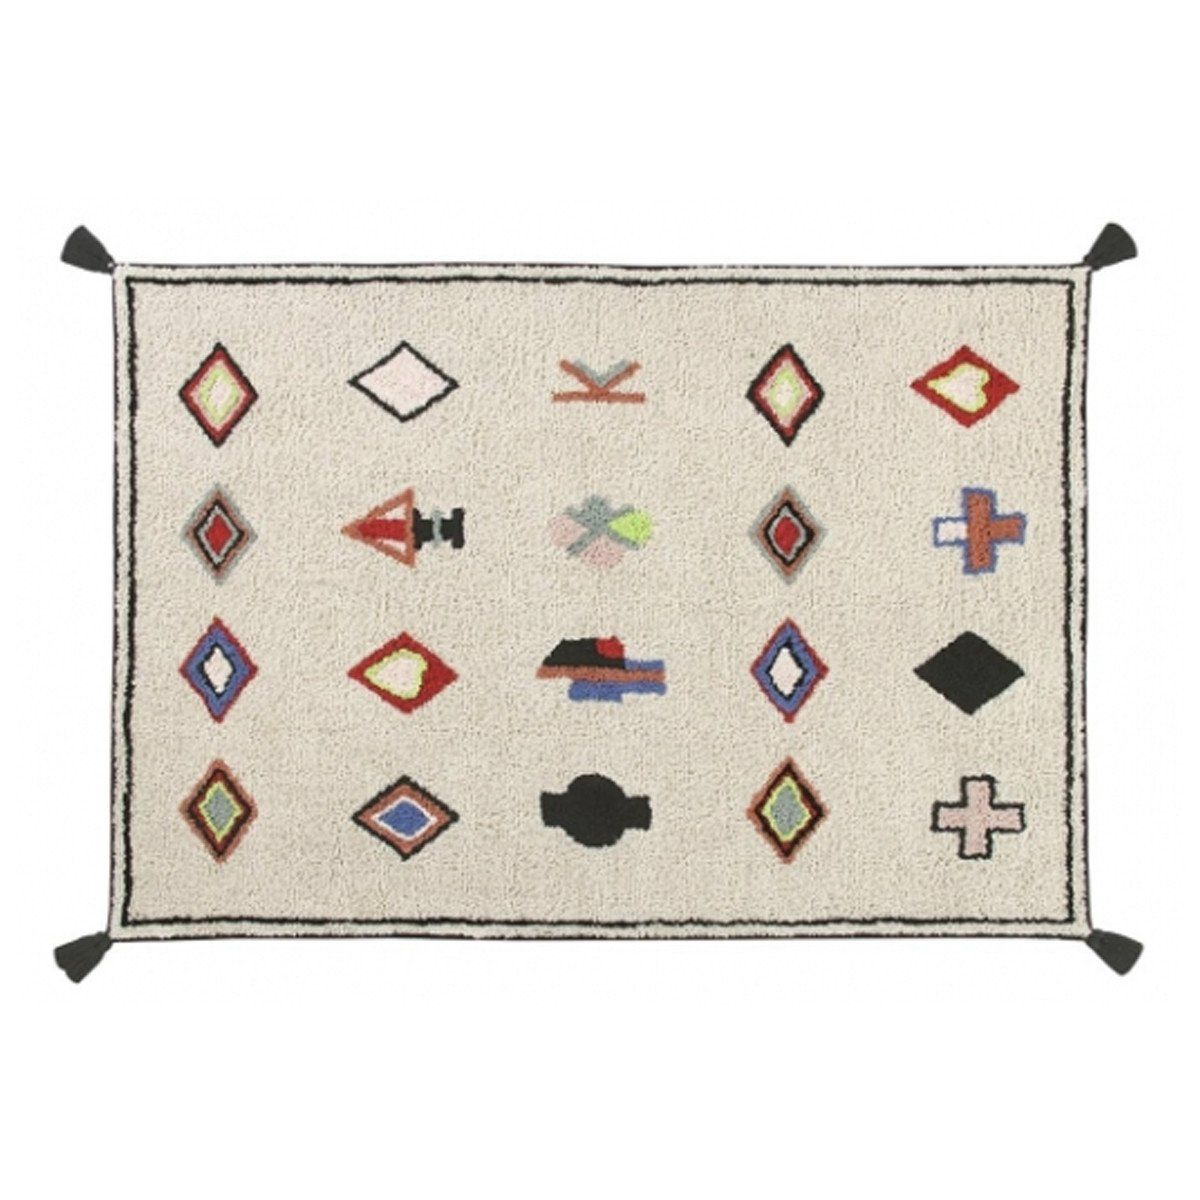 Naador Multicolor Machine Washable Rug 4 7 X 6 7 Products